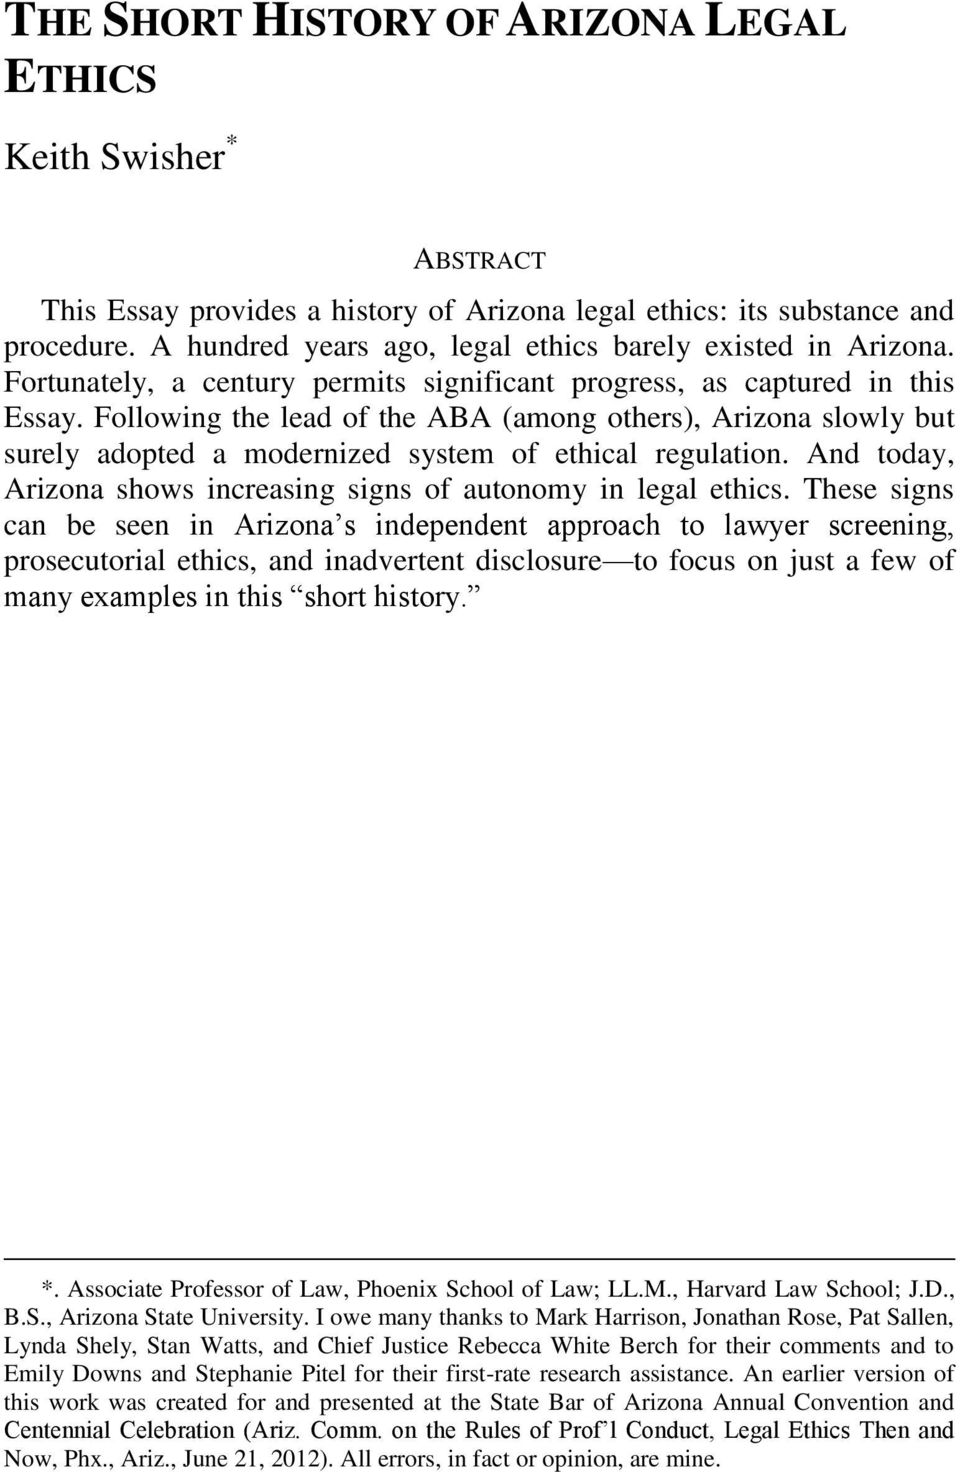 Following the lead of the ABA (among others), Arizona slowly but surely adopted a modernized system of ethical regulation. And today, Arizona shows increasing signs of autonomy in legal ethics.